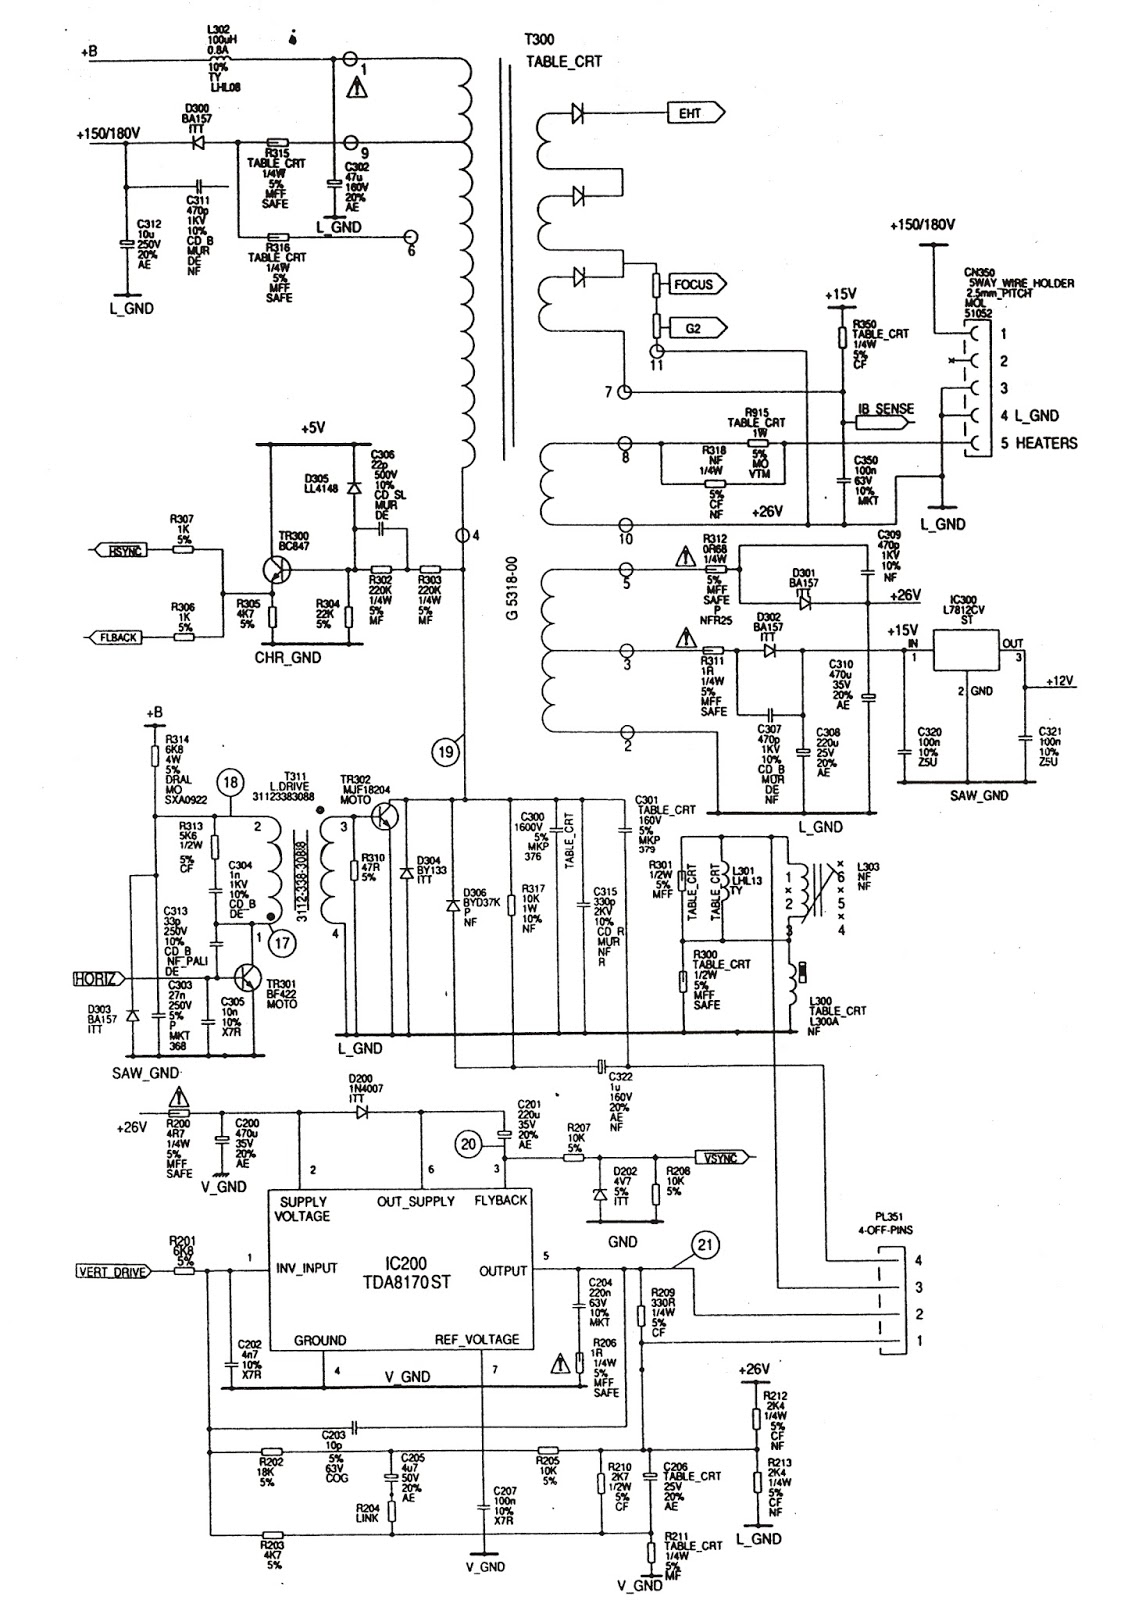 smps power supply schematic - ic sg3844